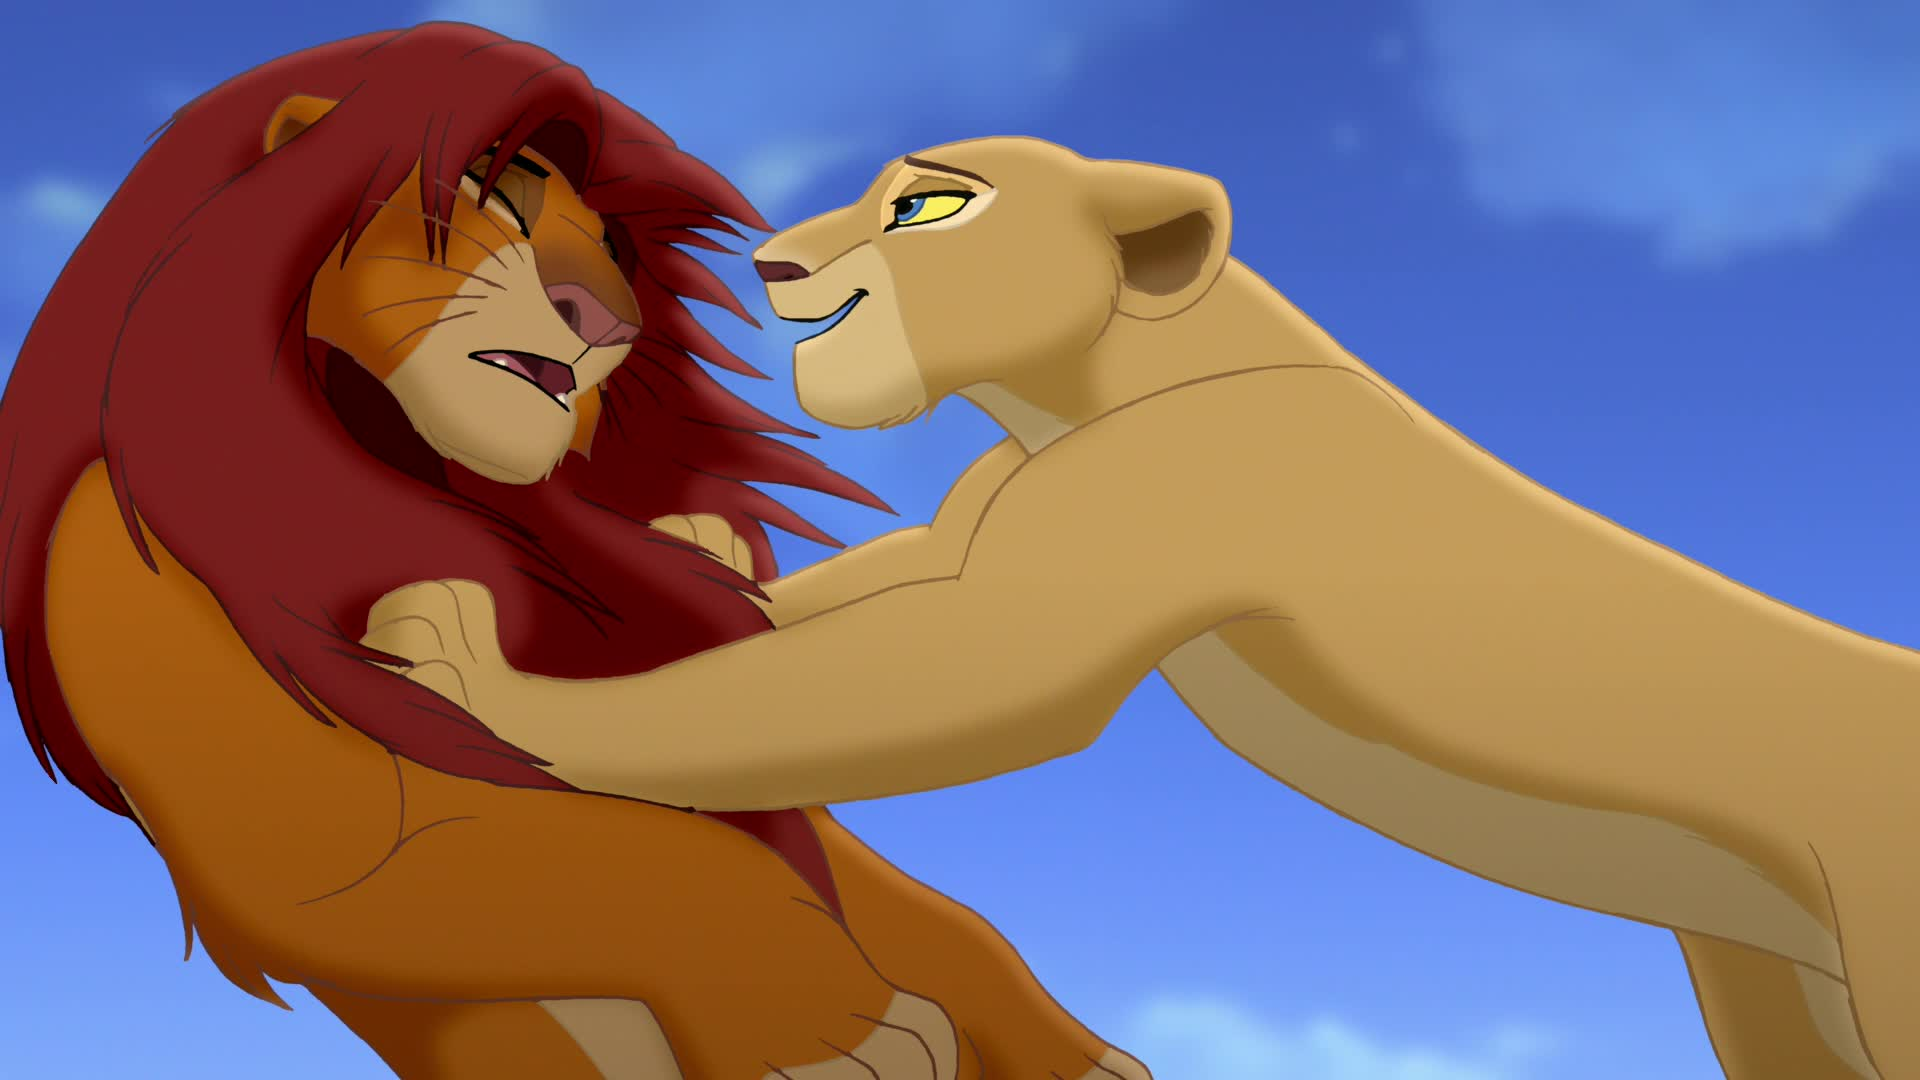 Pictures Form Lion King